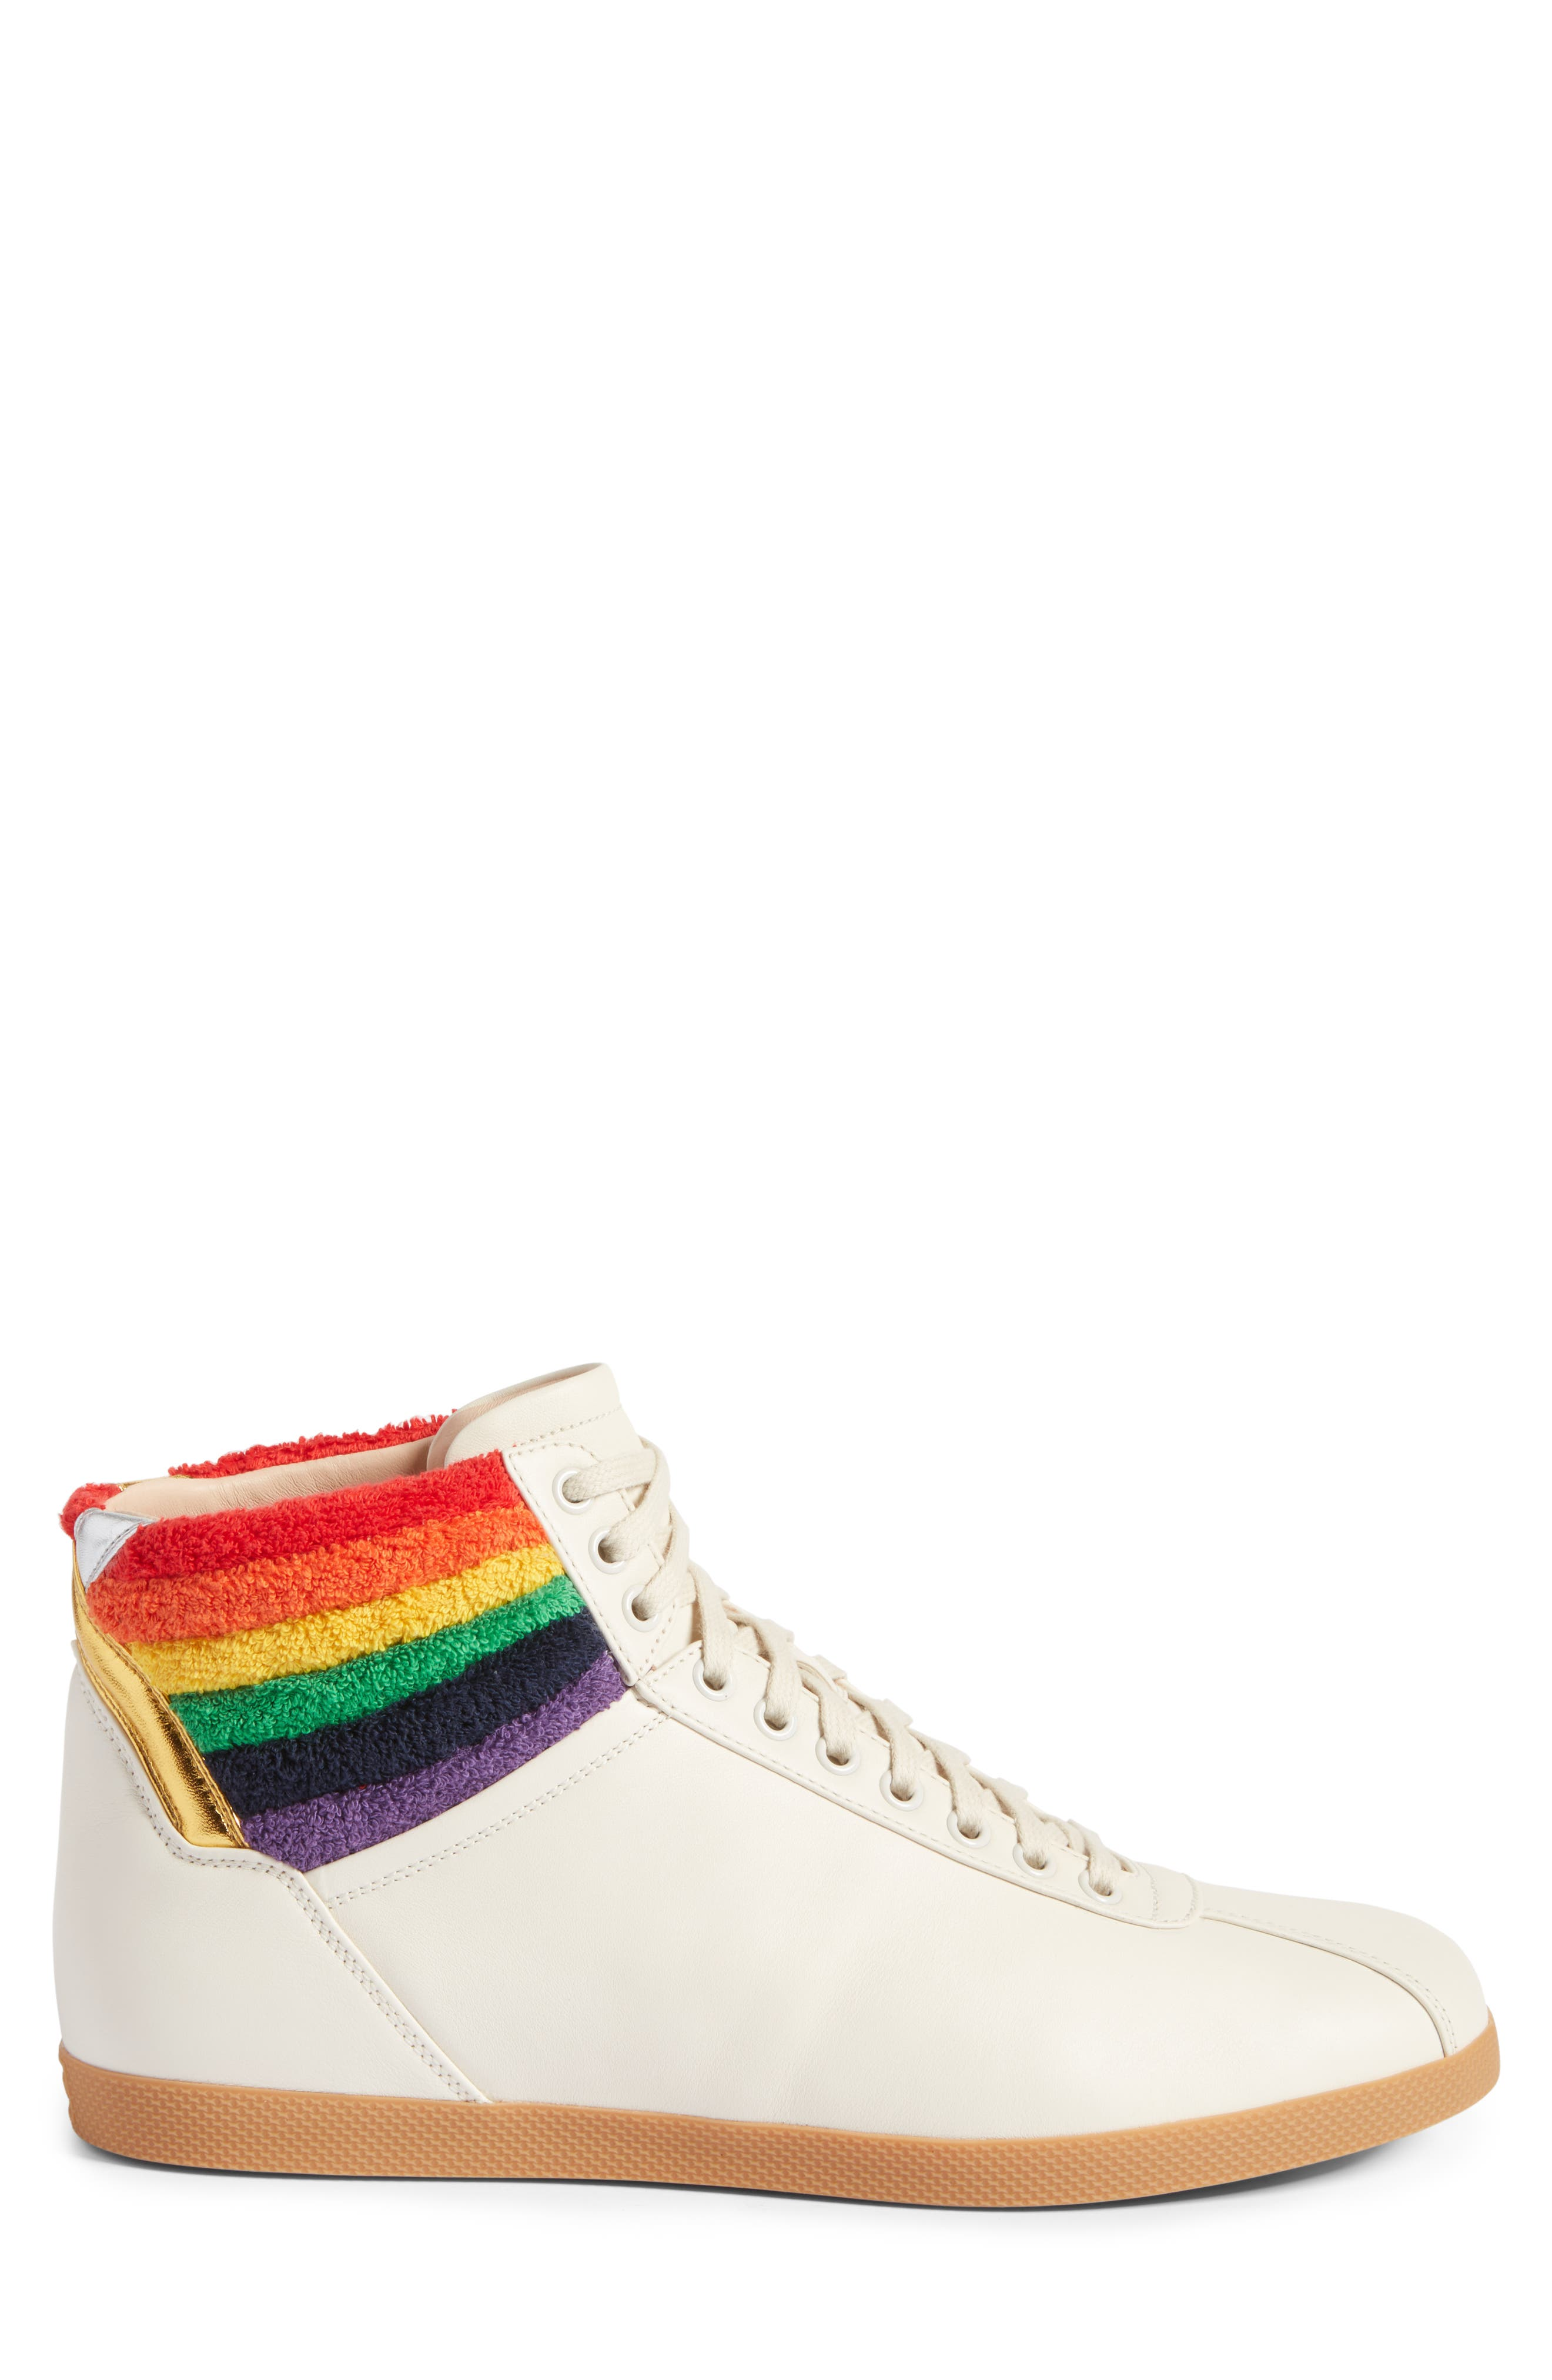 Alternate Image 3  - Gucci Bambi Rainbow Terry High Top Sneaker (Men)